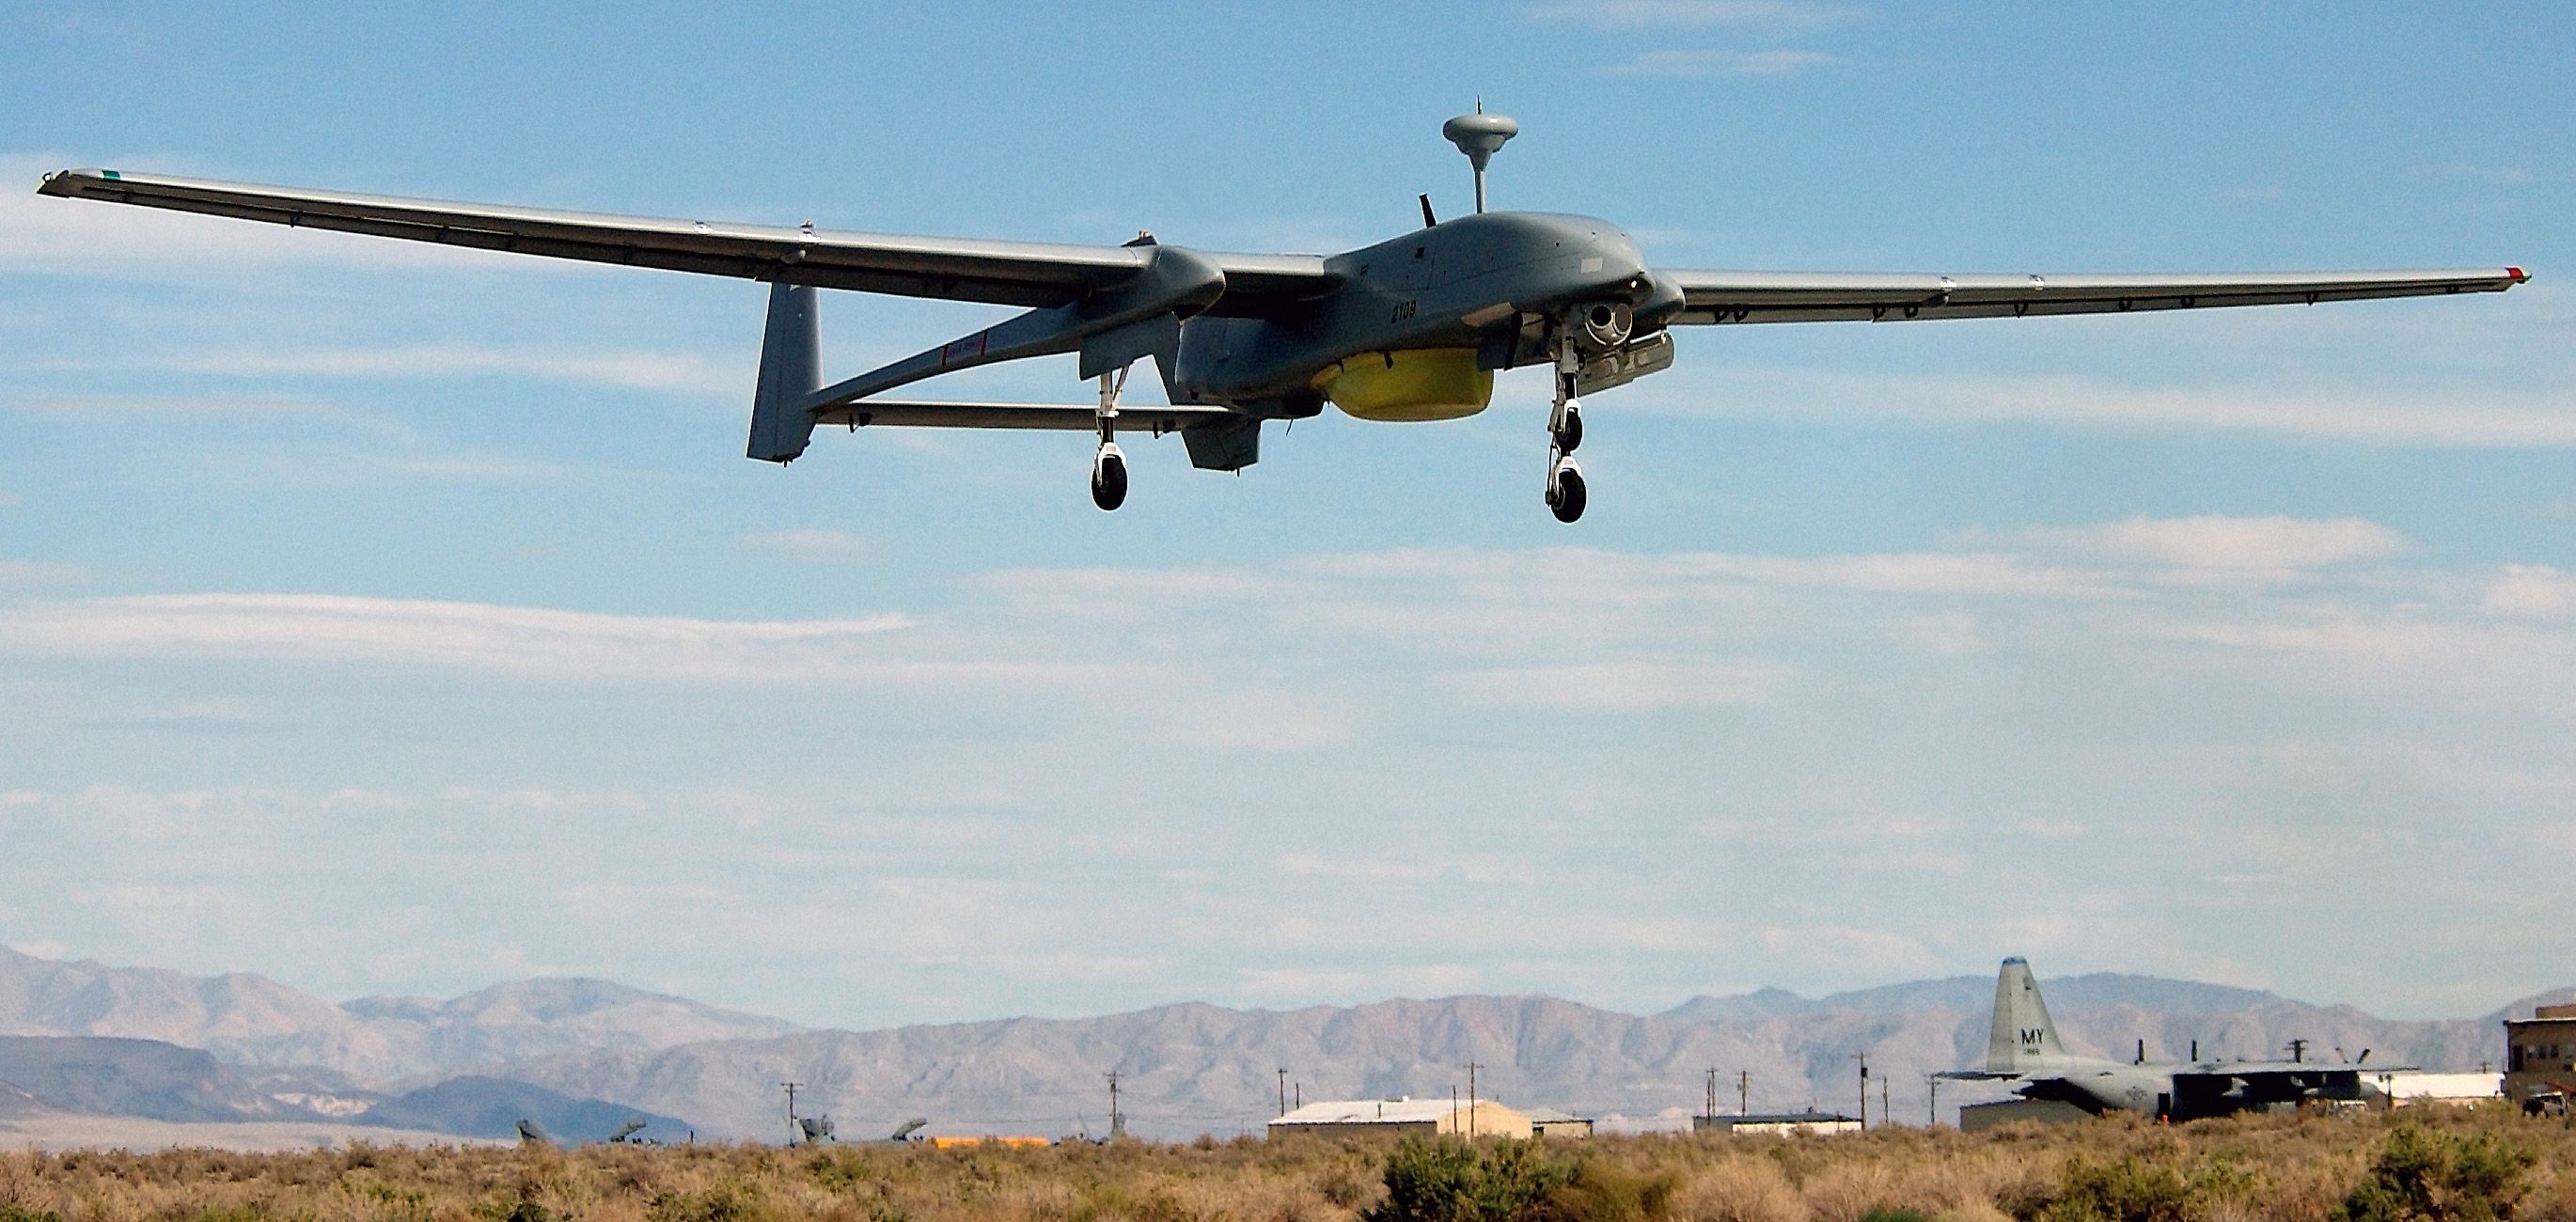 Can Russian UAVs Close The Gap With America Or Israel